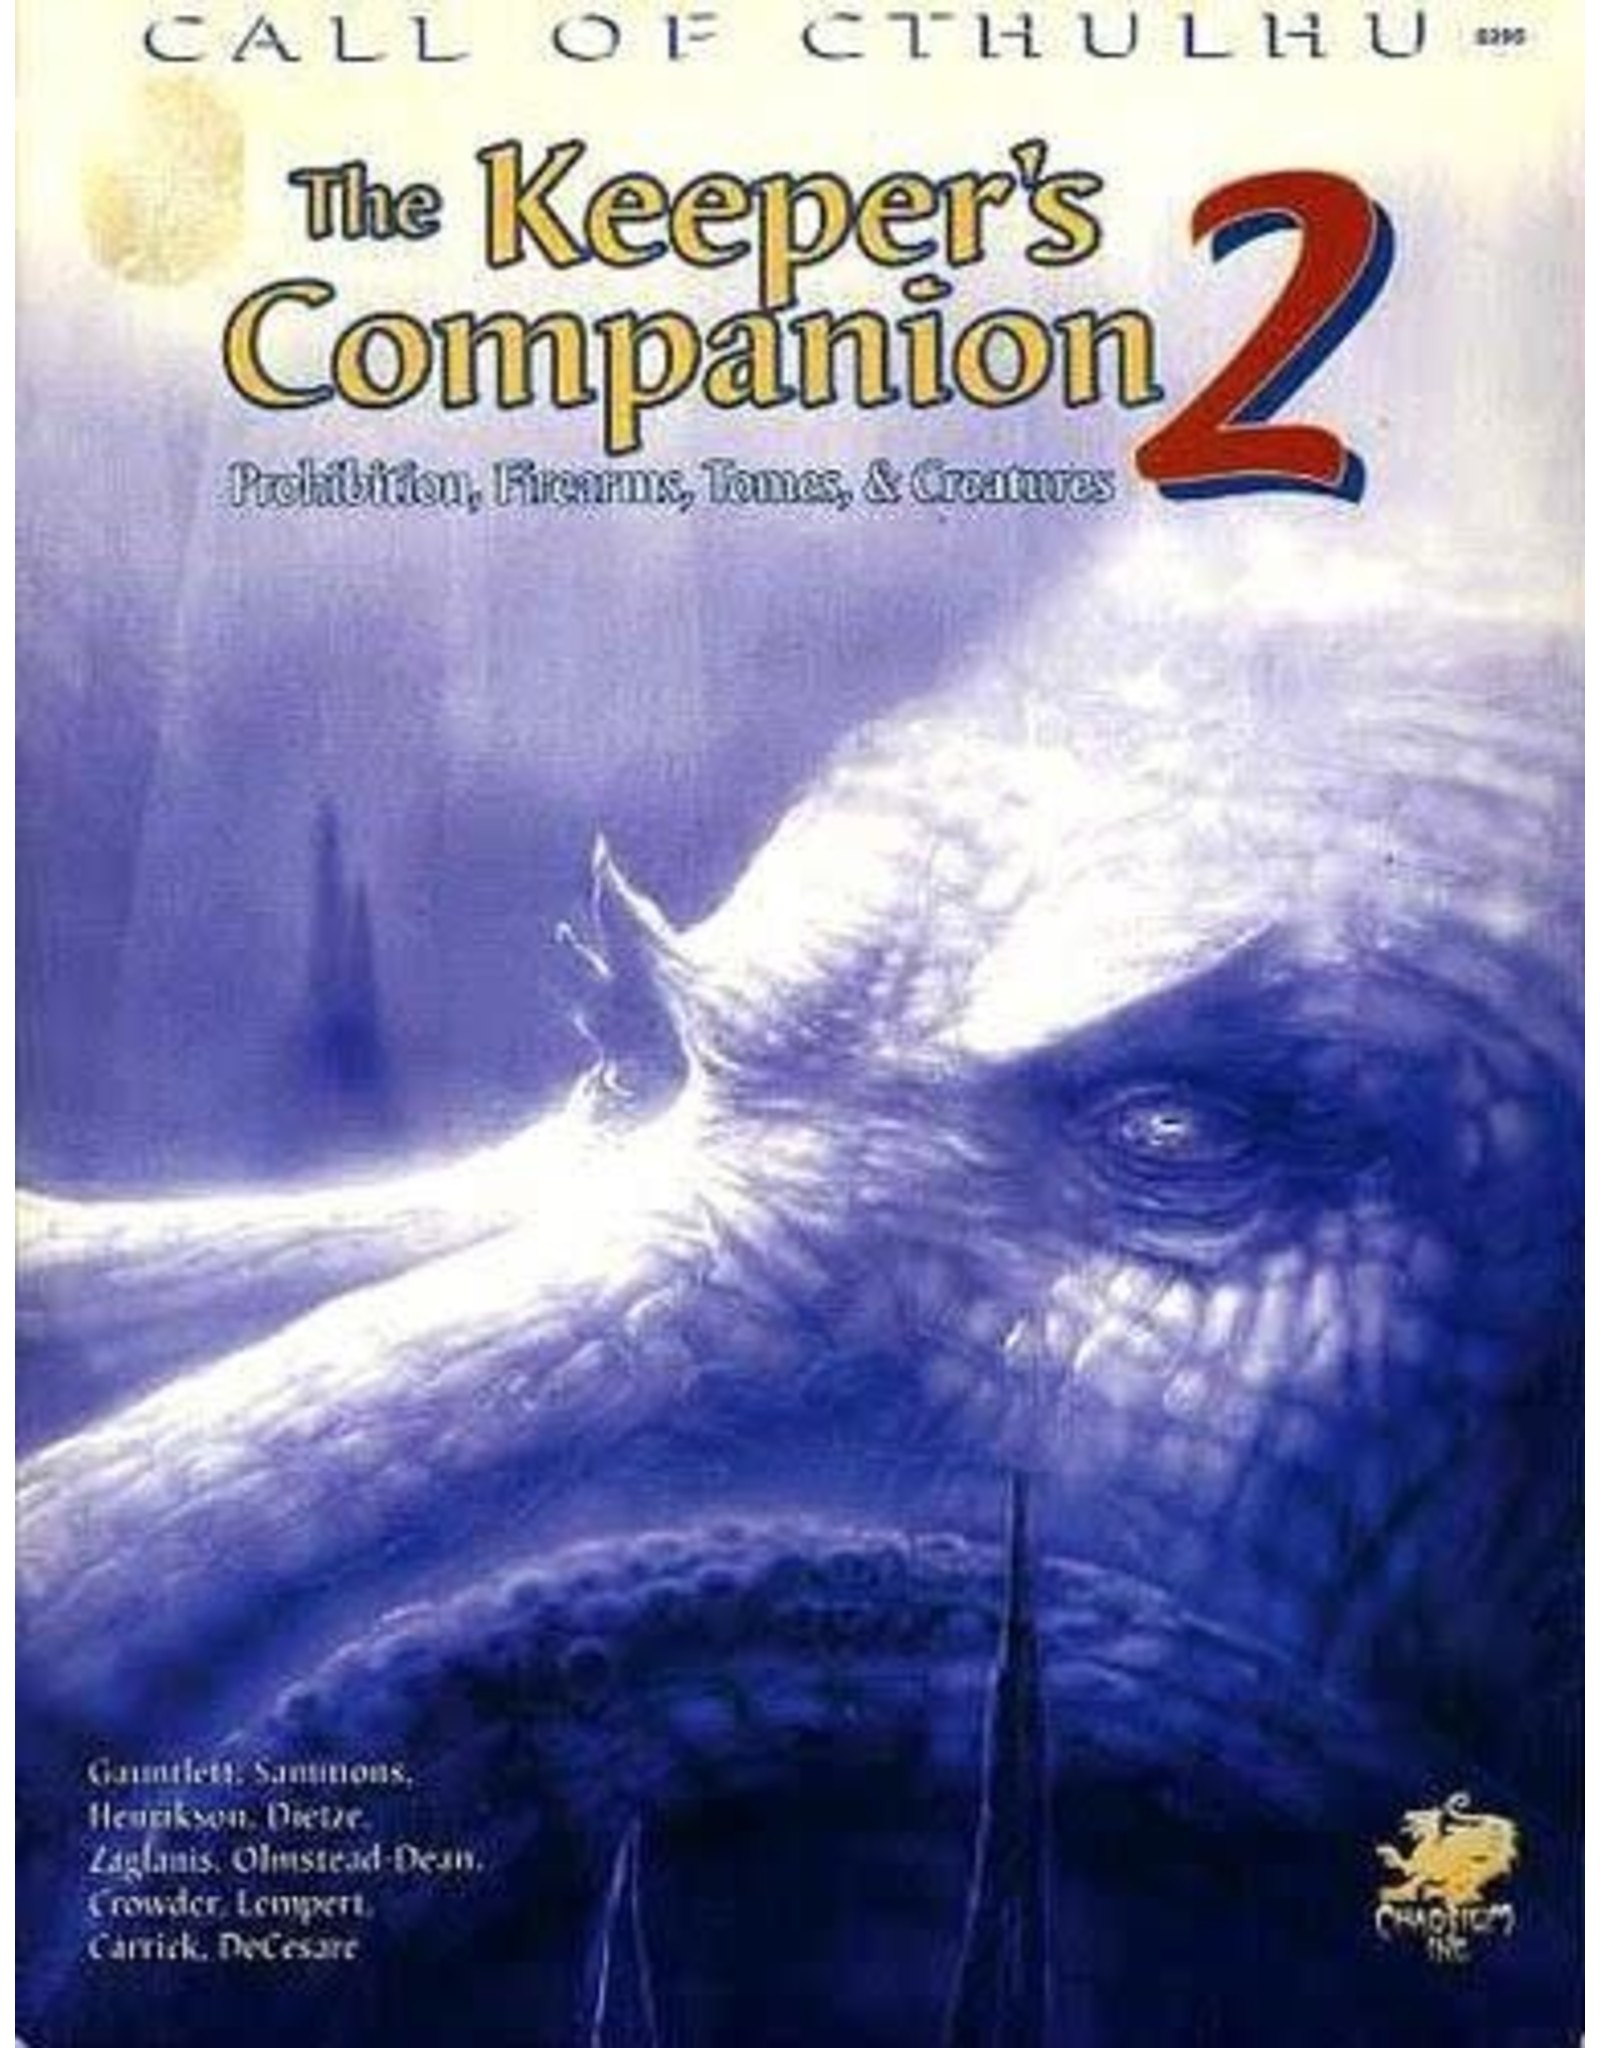 Call of Cthulhu RPG 6e The Keeper's Companion Vol. 2